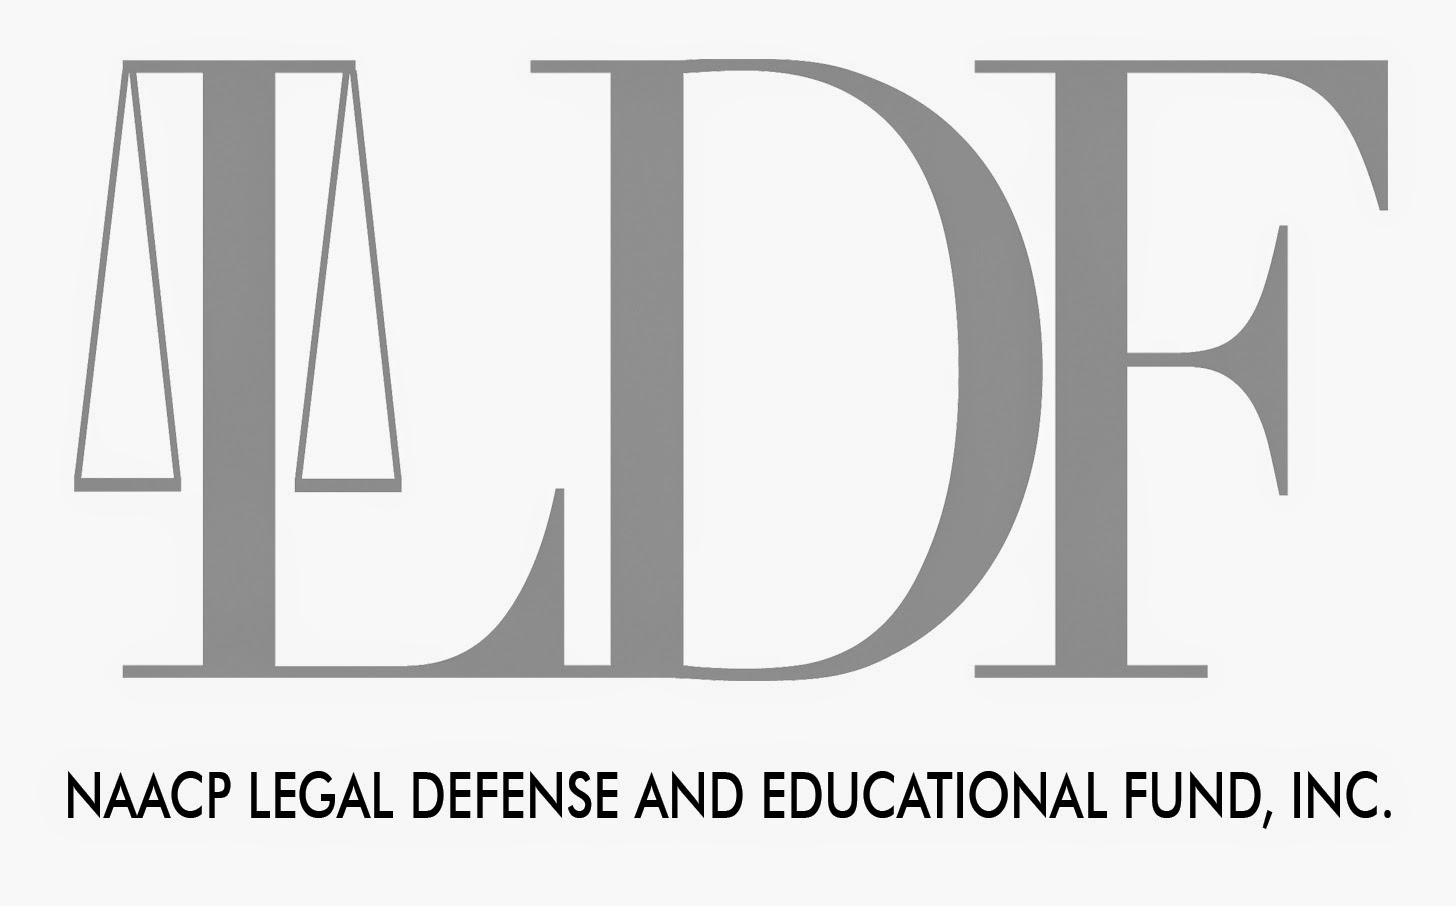 The Mad Professah Lectures Naacp Legal Defense Fund Files